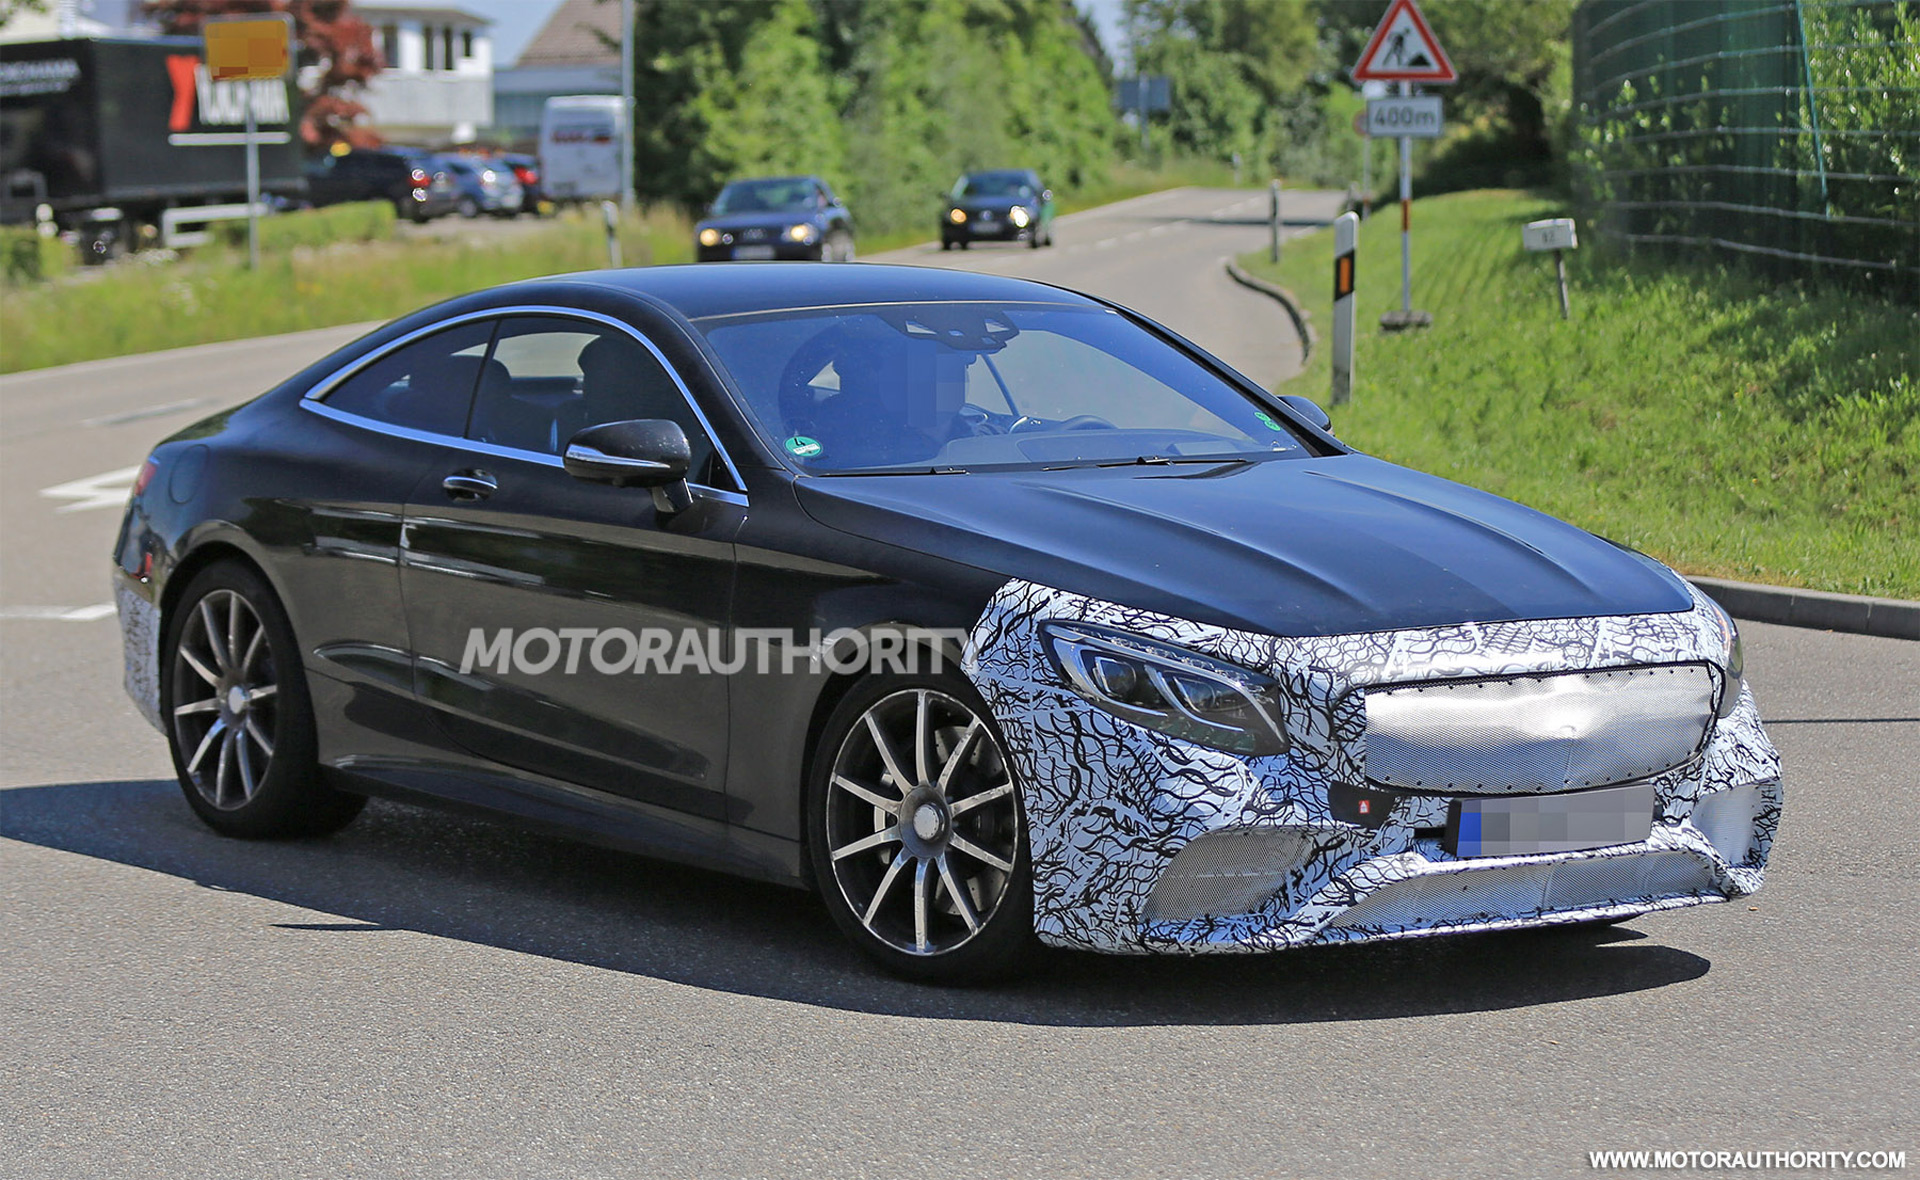 2019 Hyundai Coupe photo - 1